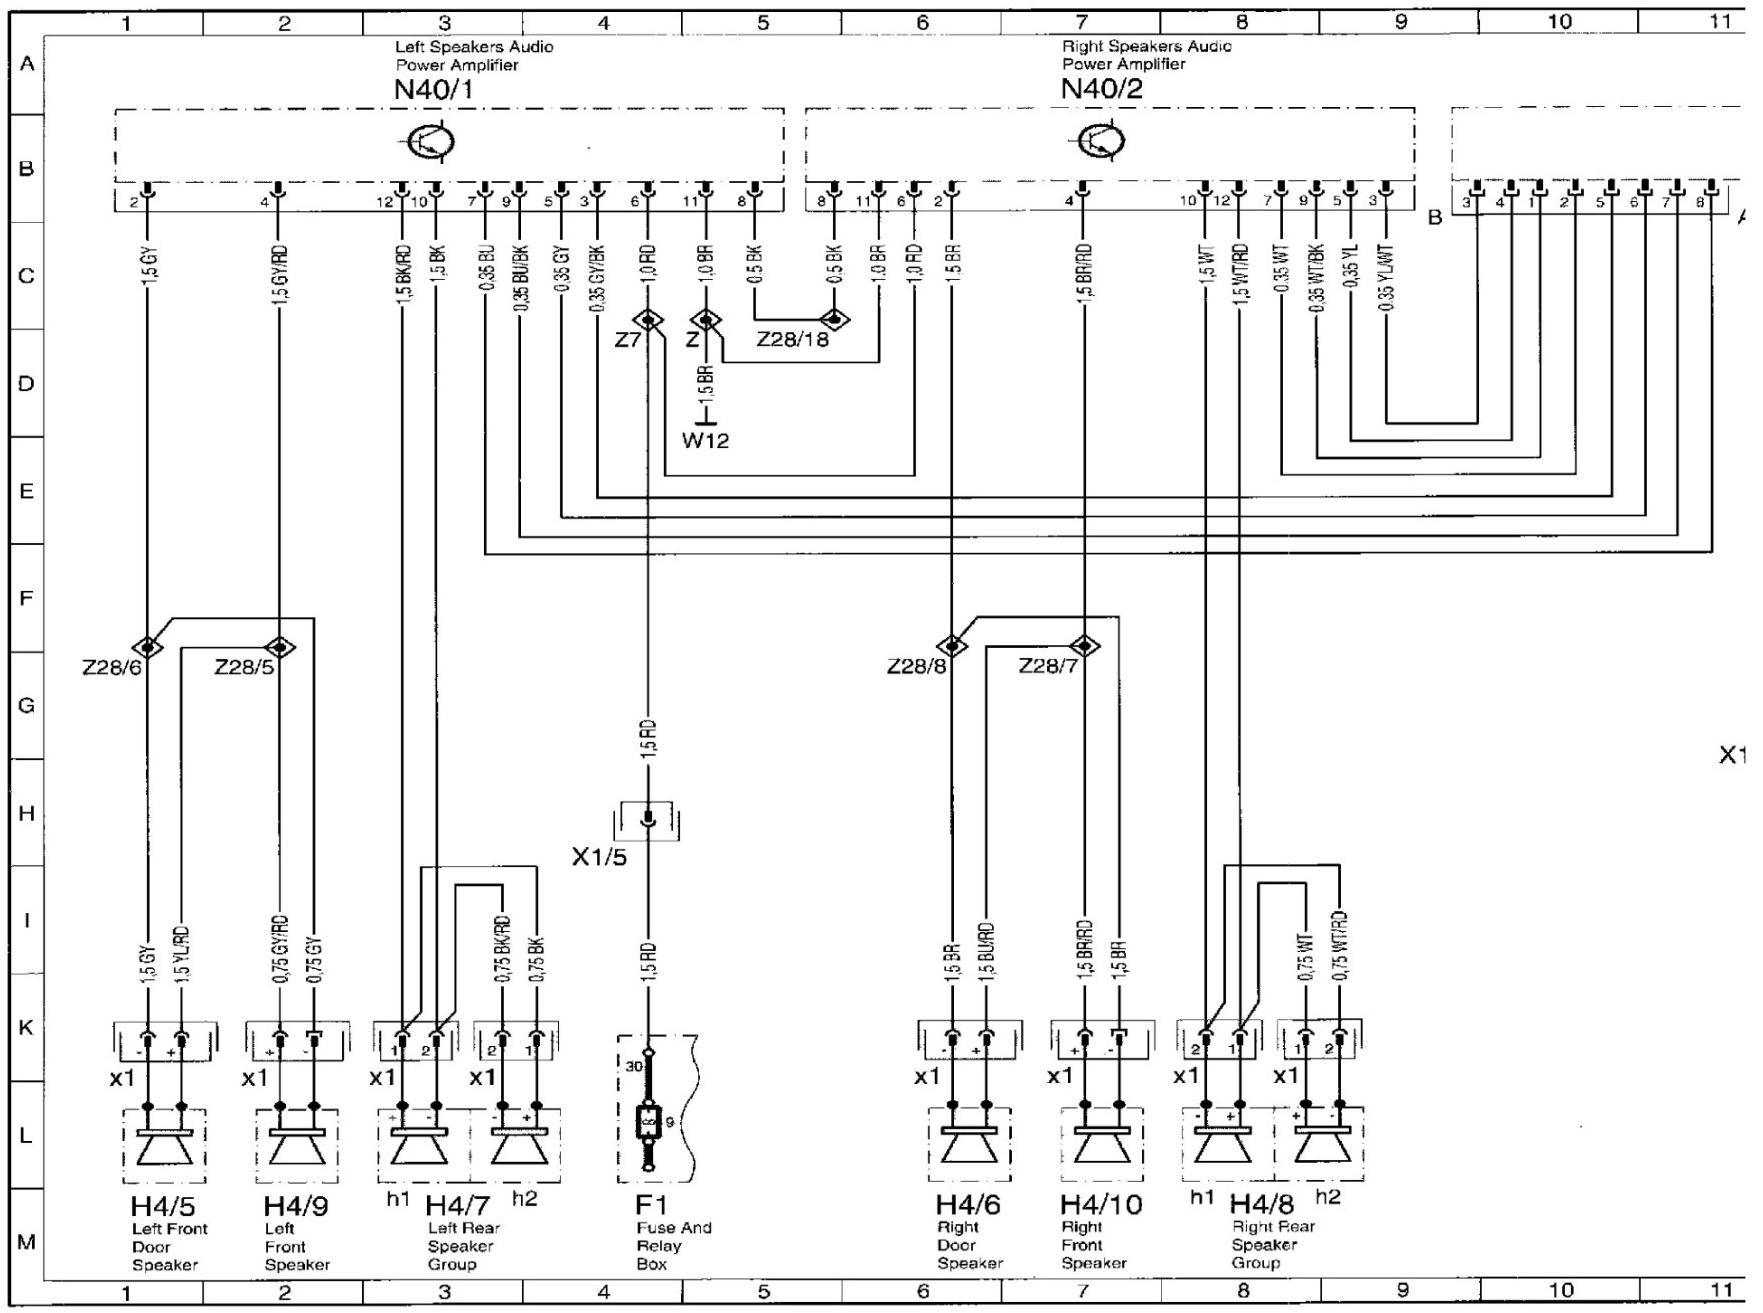 E420 Fuse Diagram Free Wiring For You Mercedes Car Stereo Detailed Rh 13 3 5 Gastspiel Gerhartz De Electrical